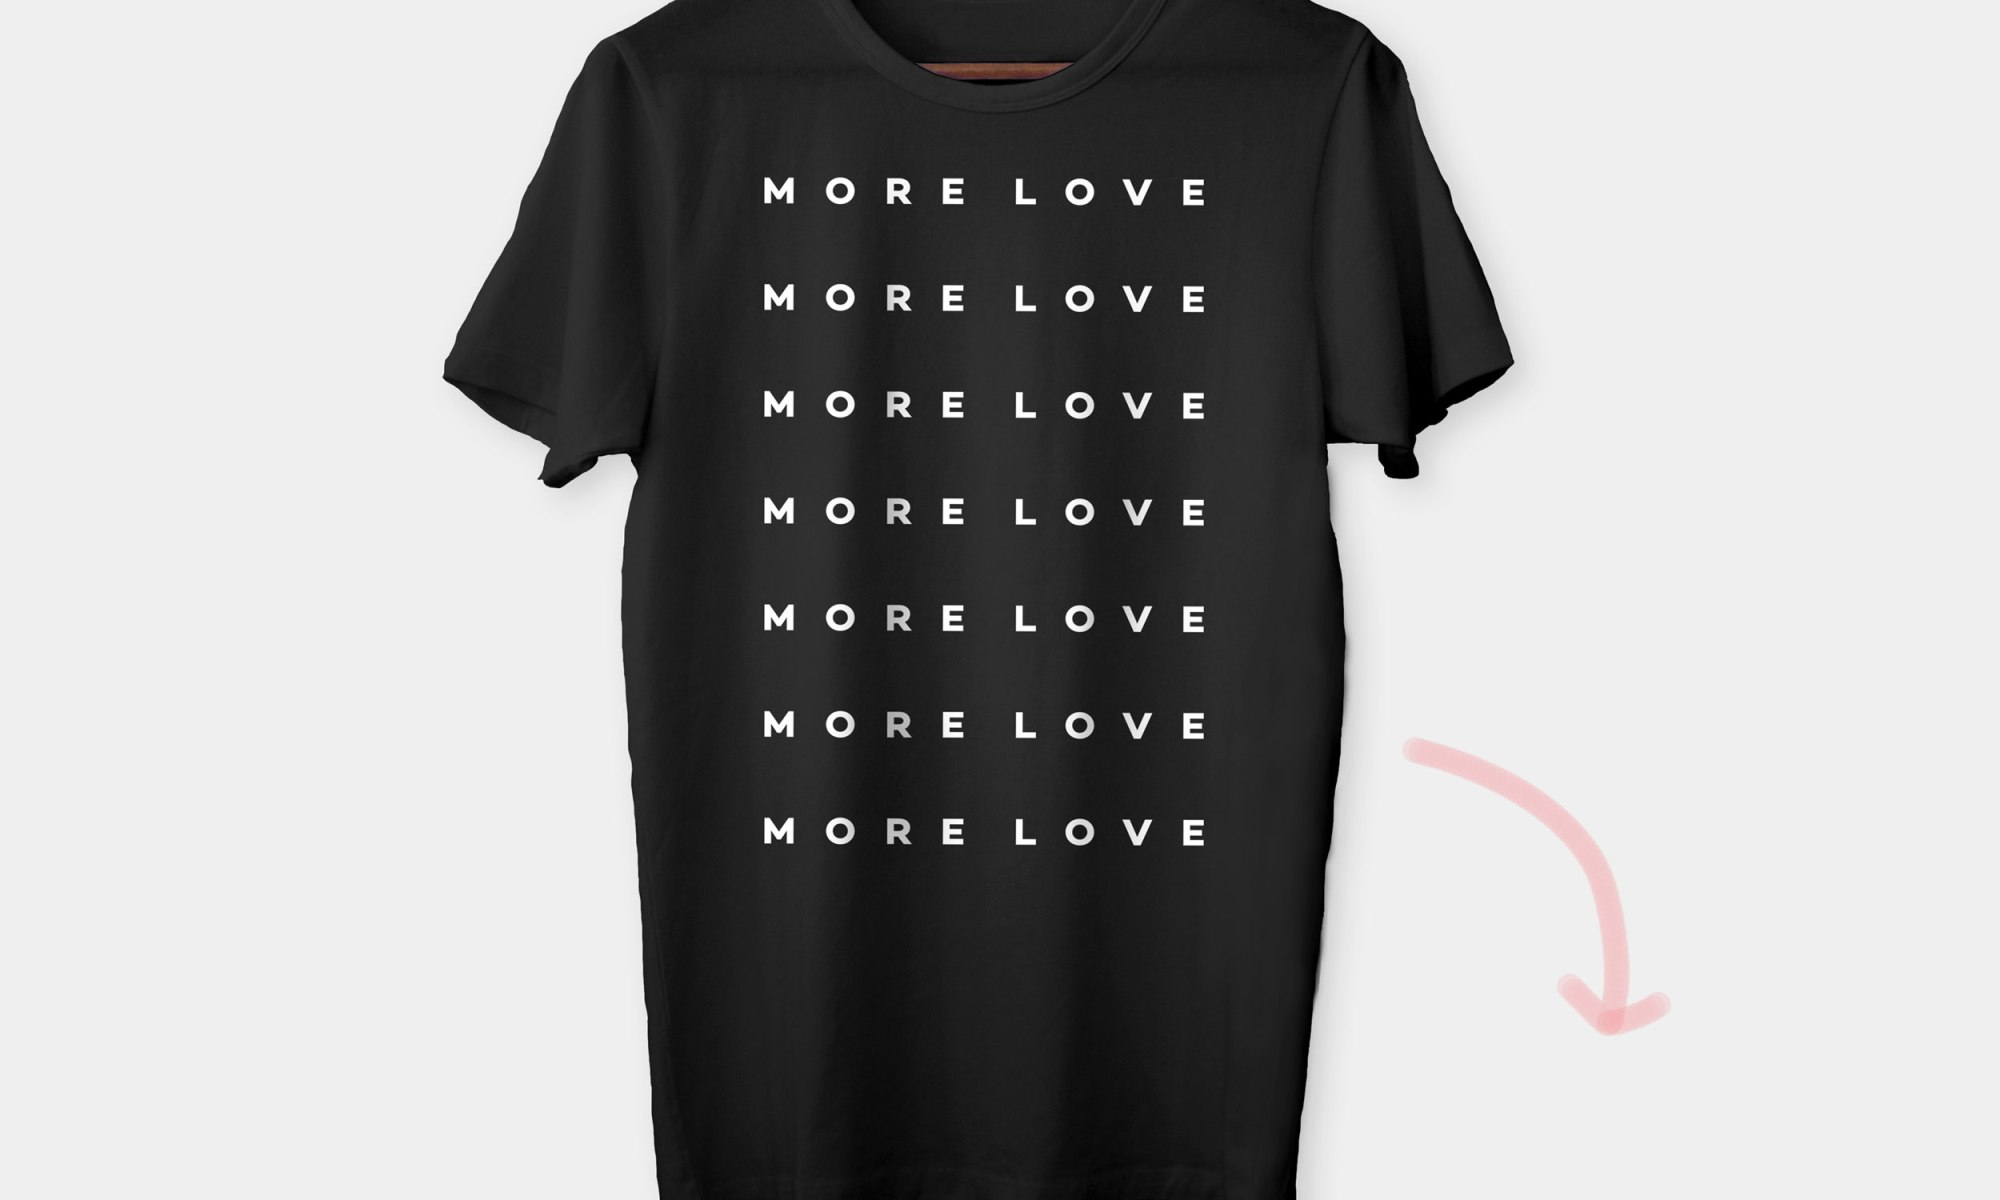 #MORELOVETEE by Mint and Merit for Kurandza.